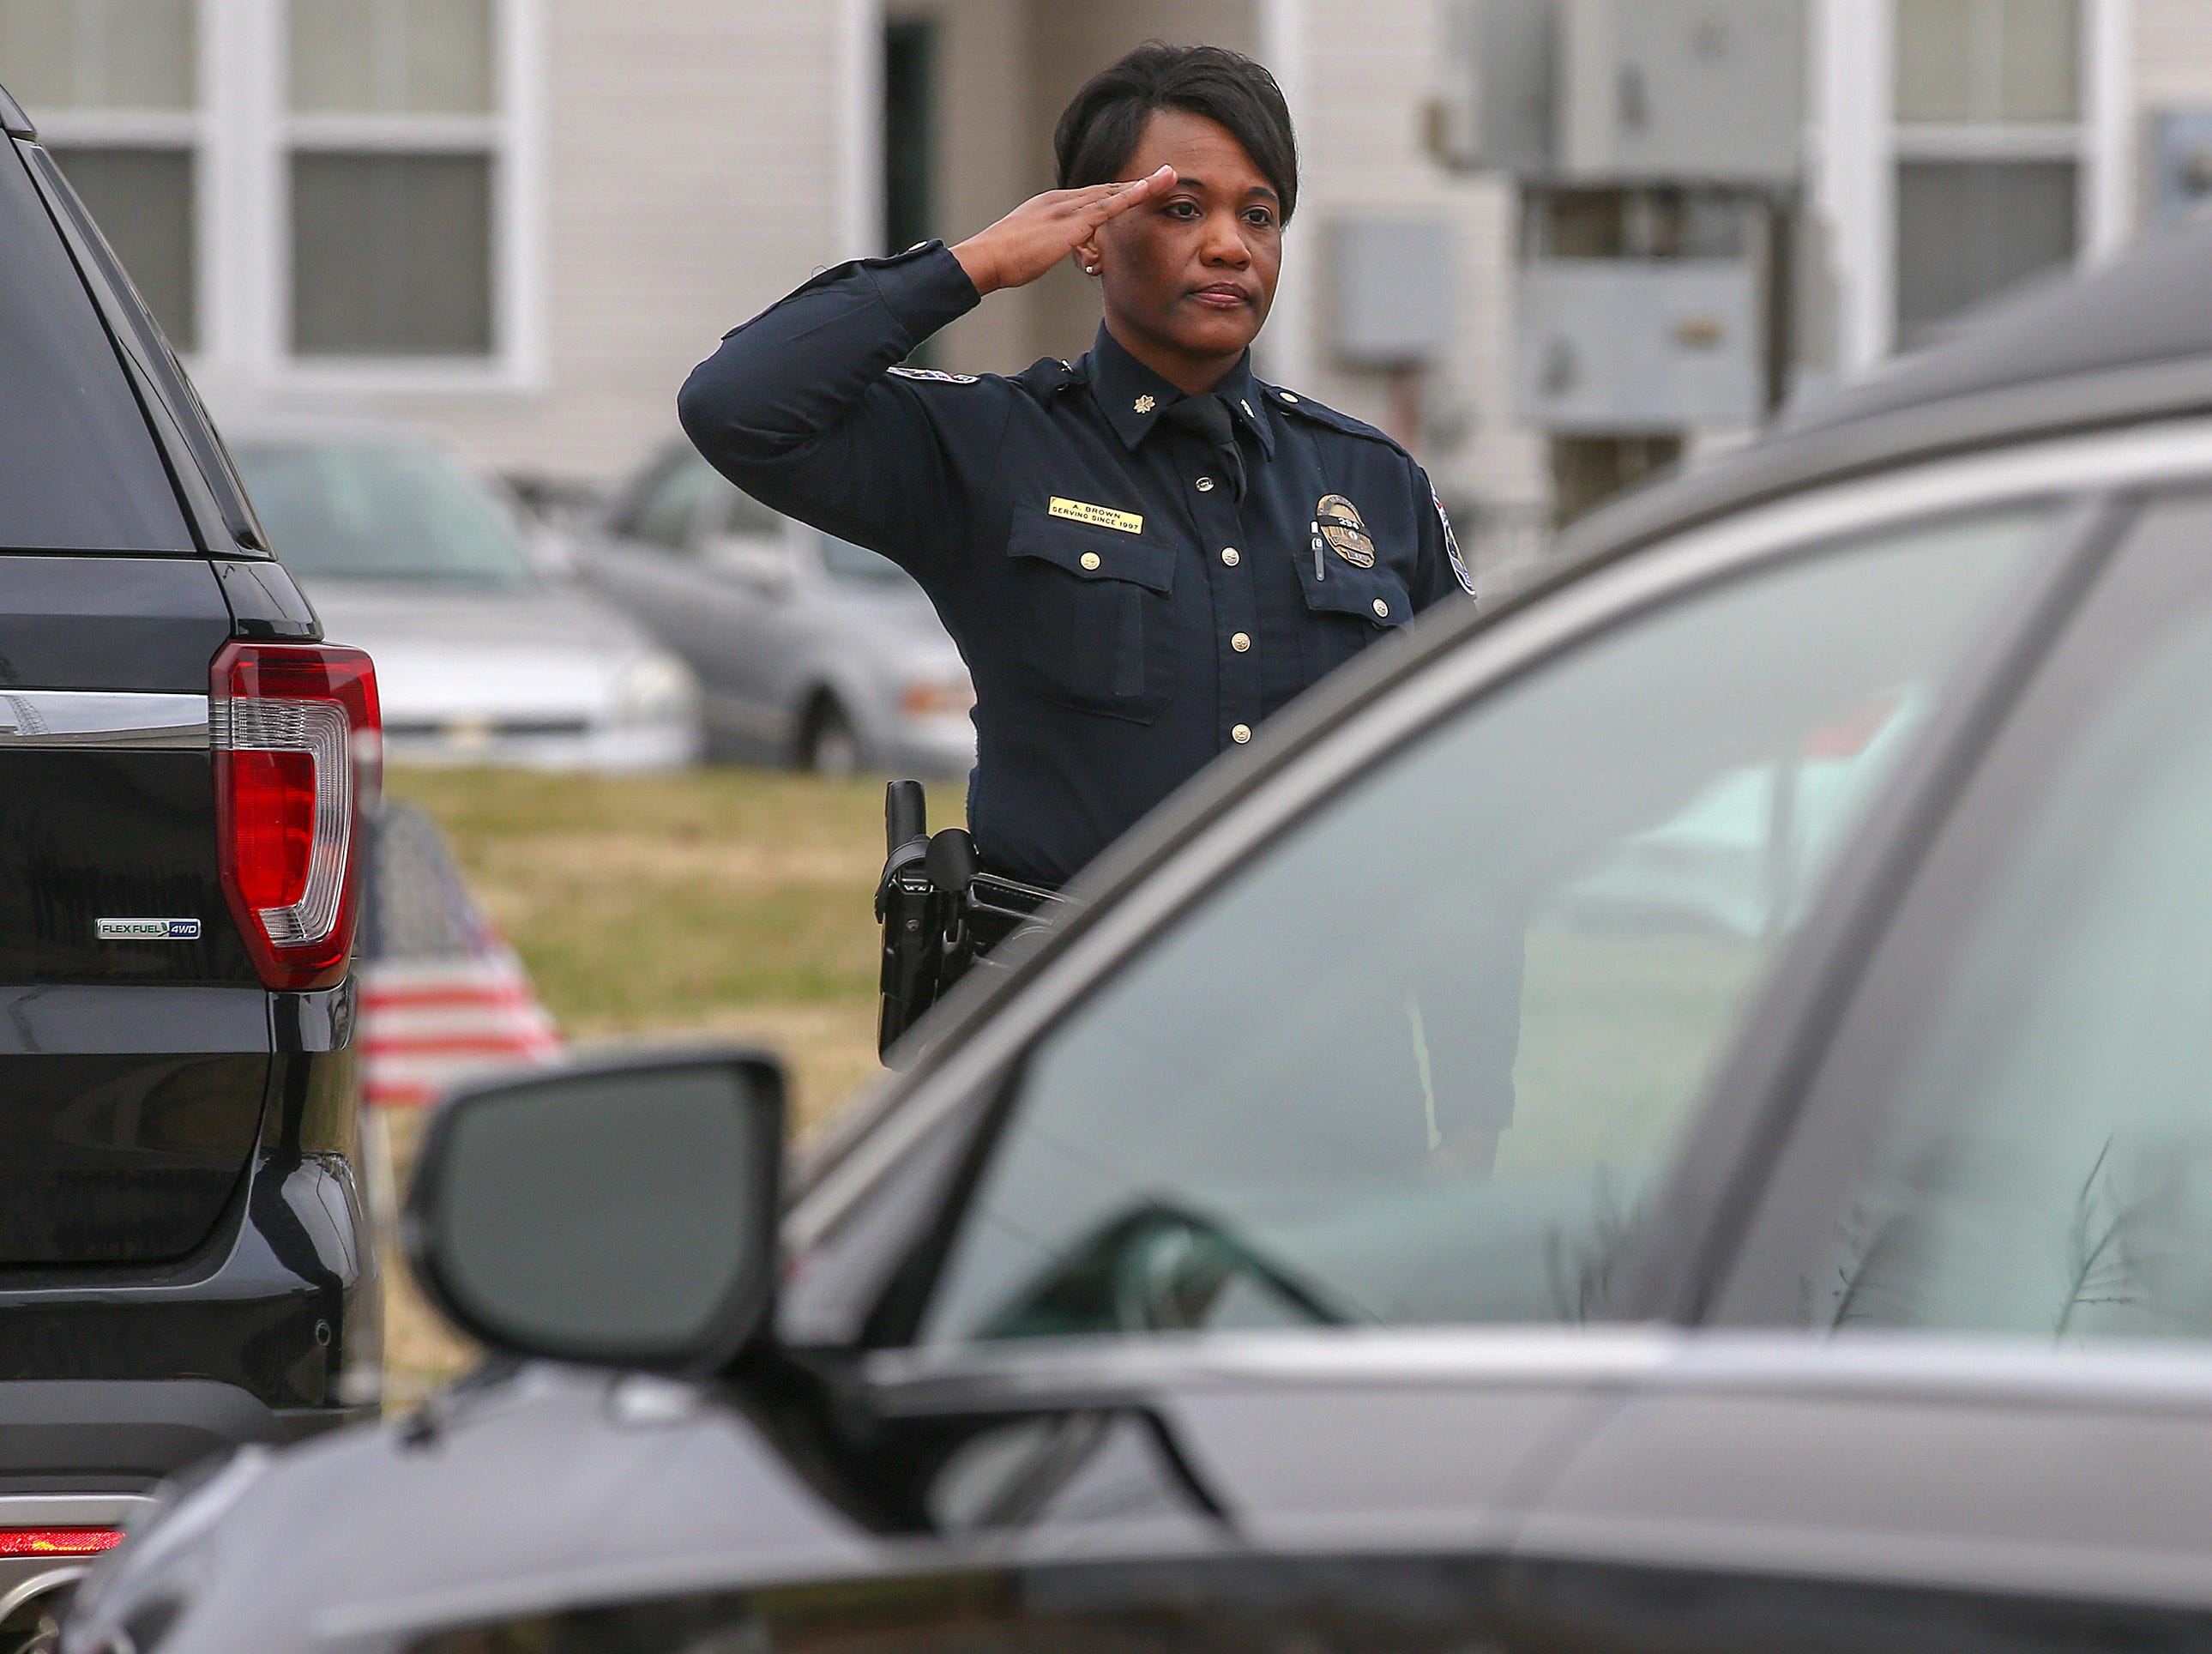 Police officers salute the hearse carrying Deidre Mengedoht as it stops at the LMPD 2nd Division headquarters in Park DuValle. December 29, 2018